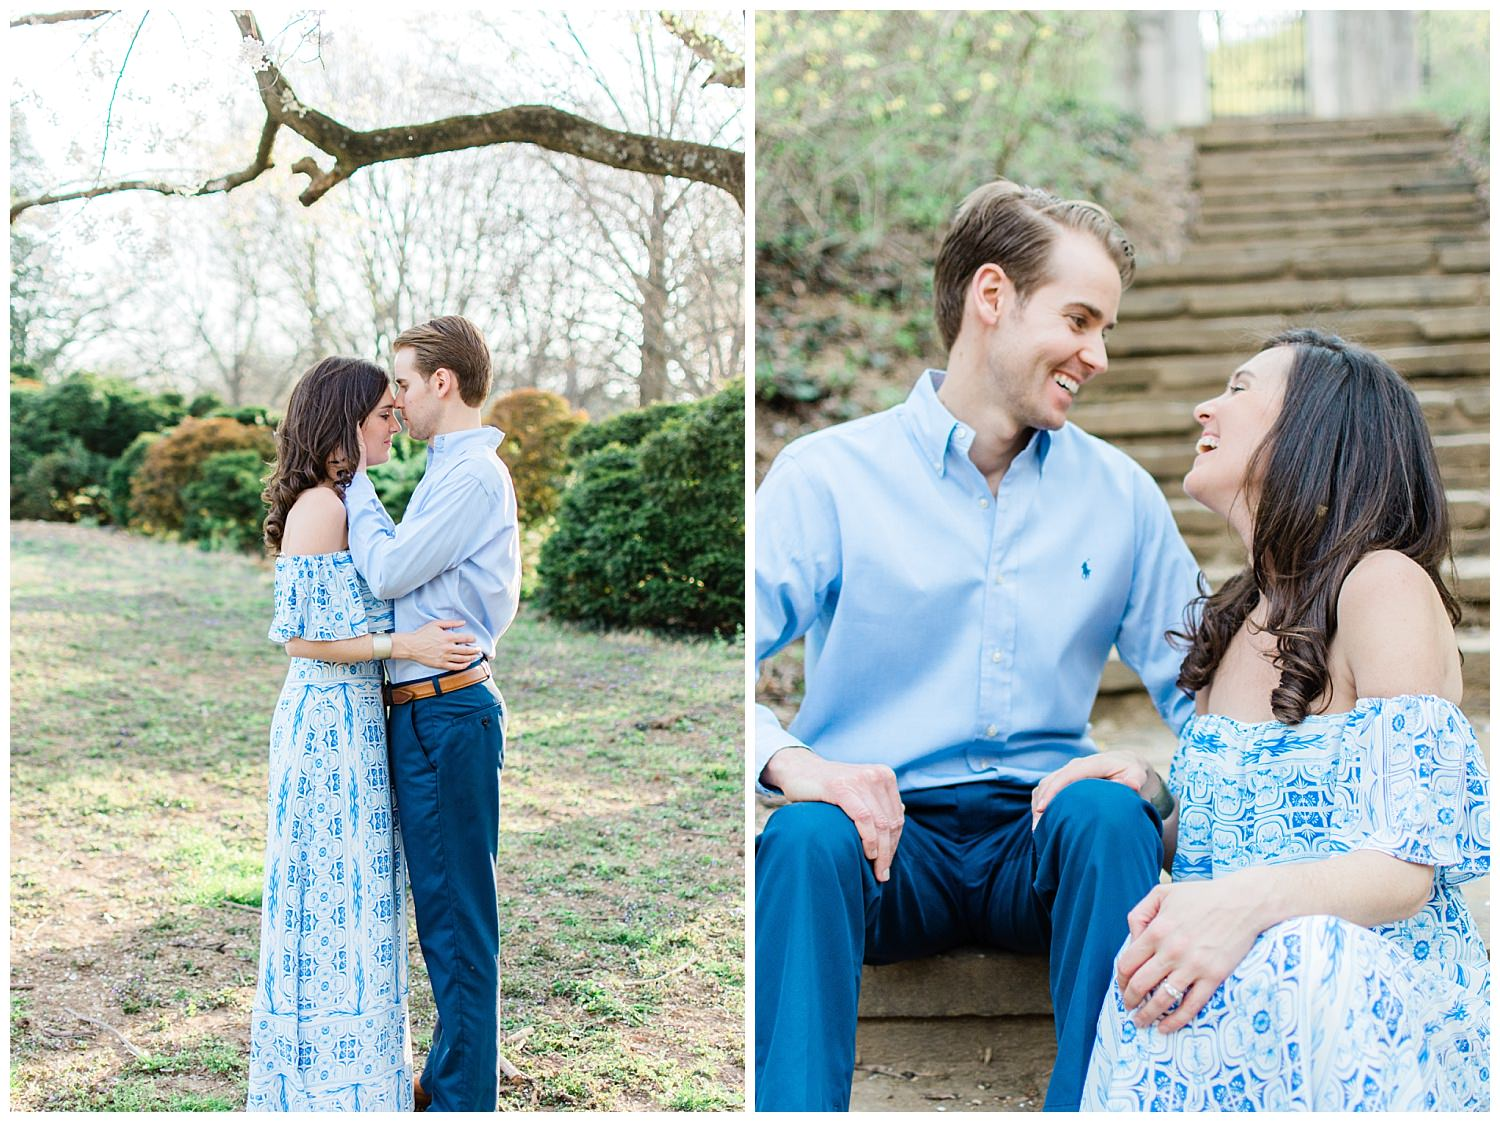 Ethereal Georgetown Engagement Session | Rachel Galluzzo Photography